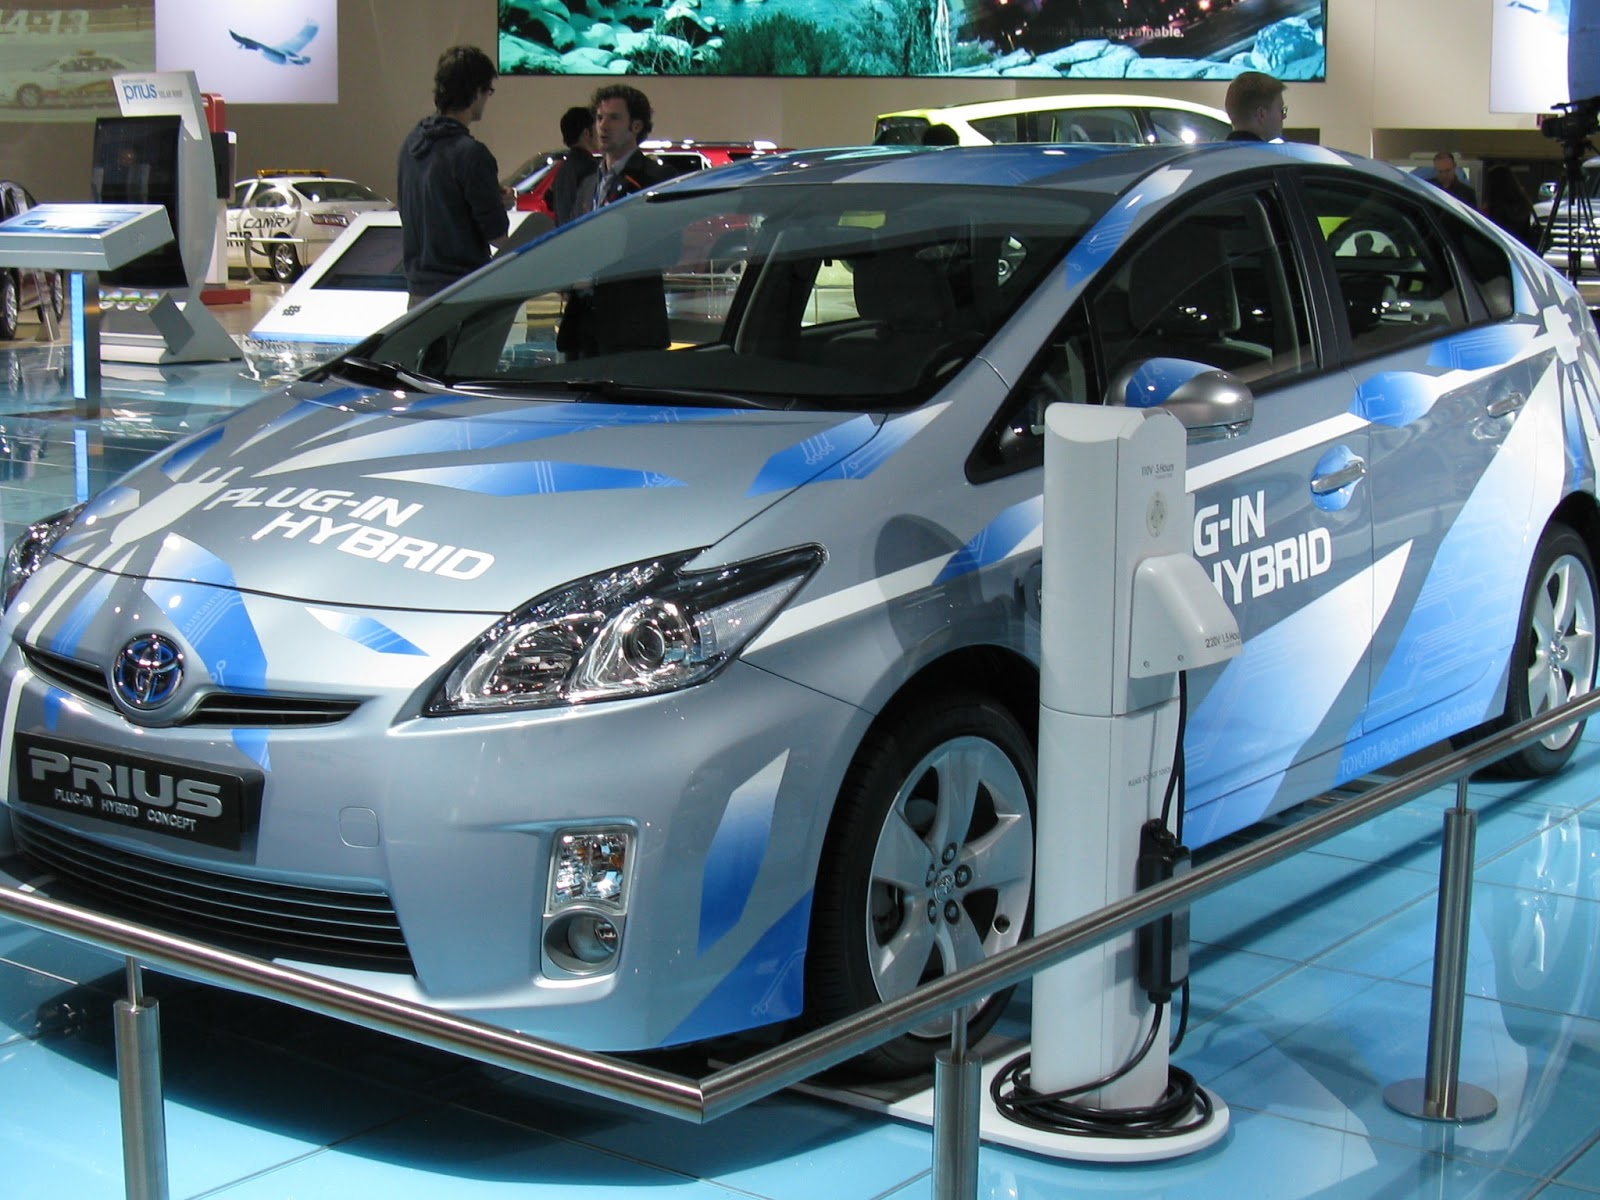 Tech News 24h: The Hybrid Car Revolution